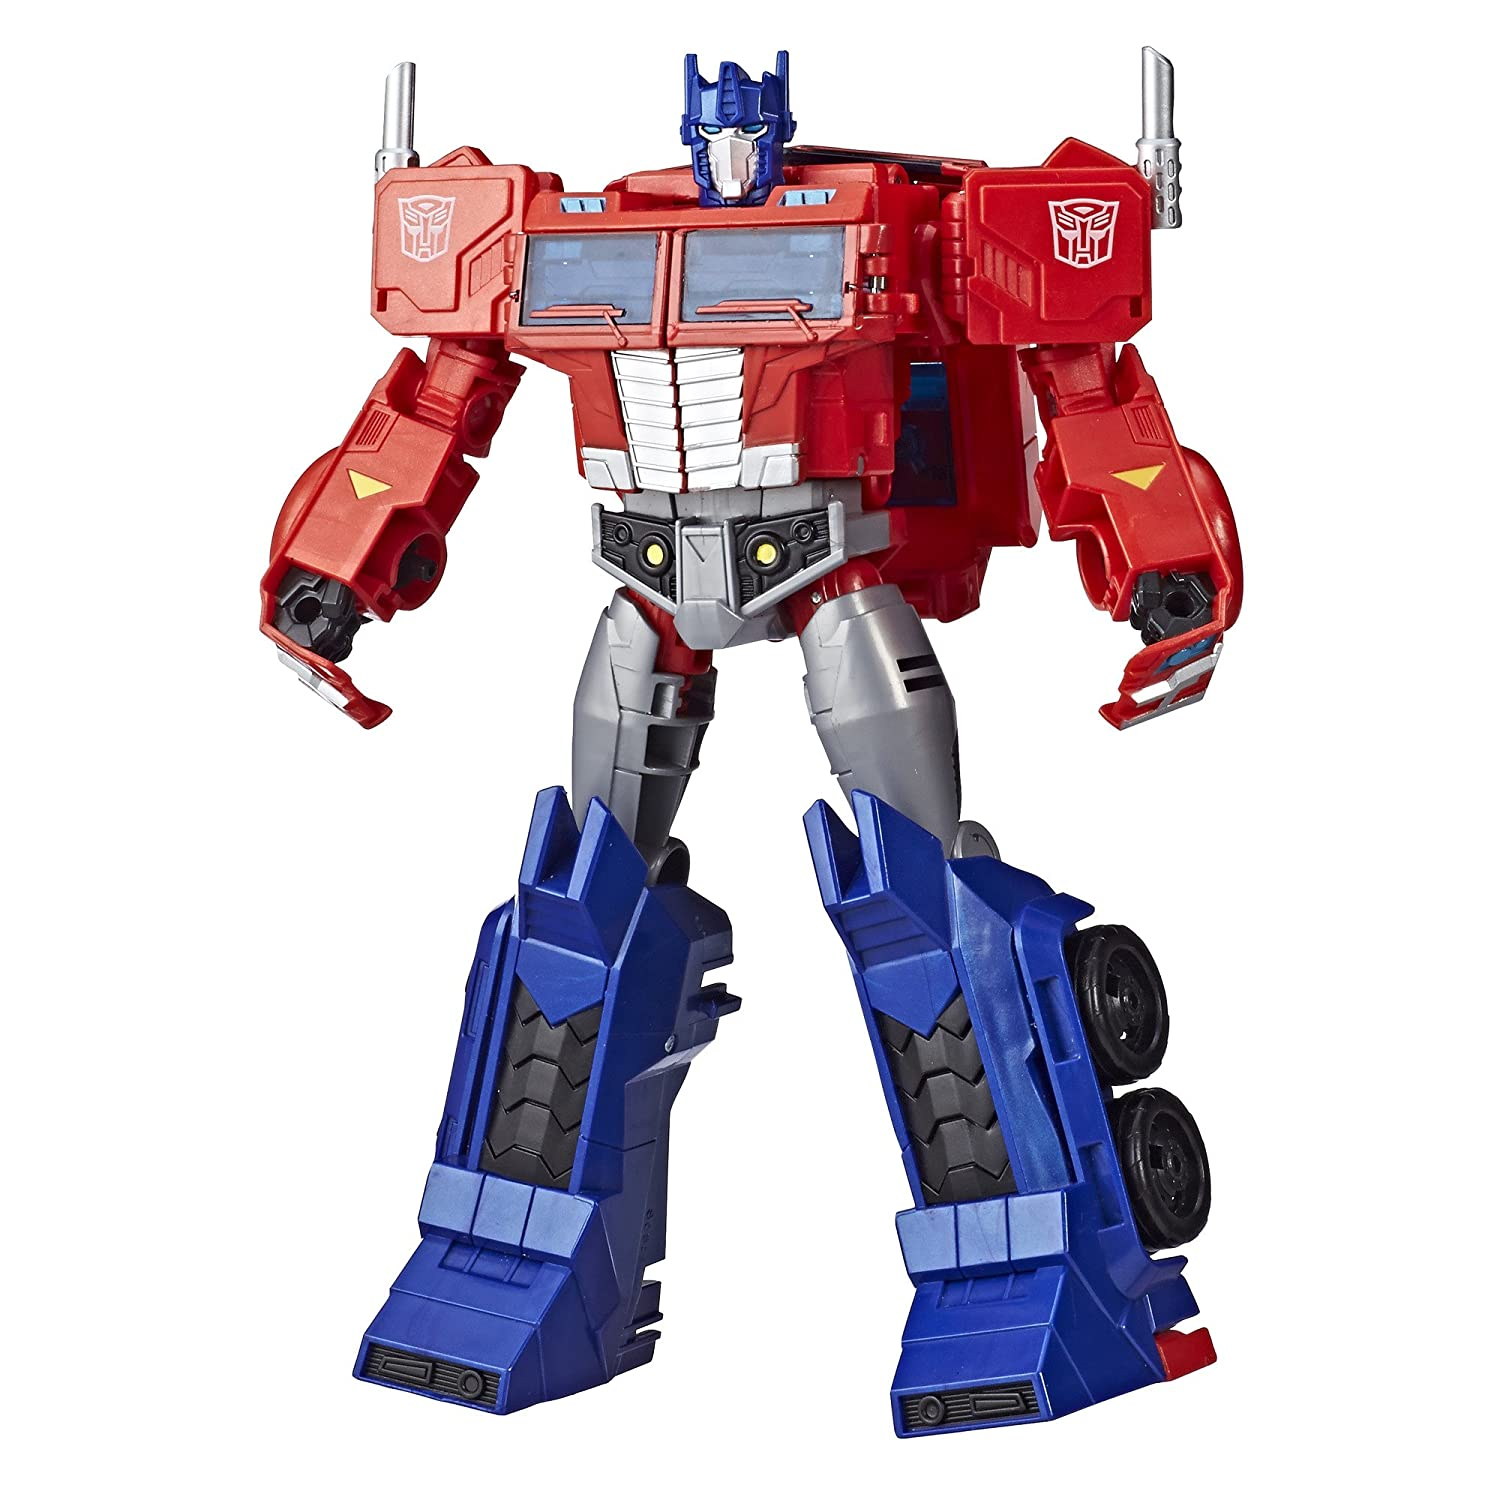 8 Best Transformer Toys For Kids (2019 Reviews) 1